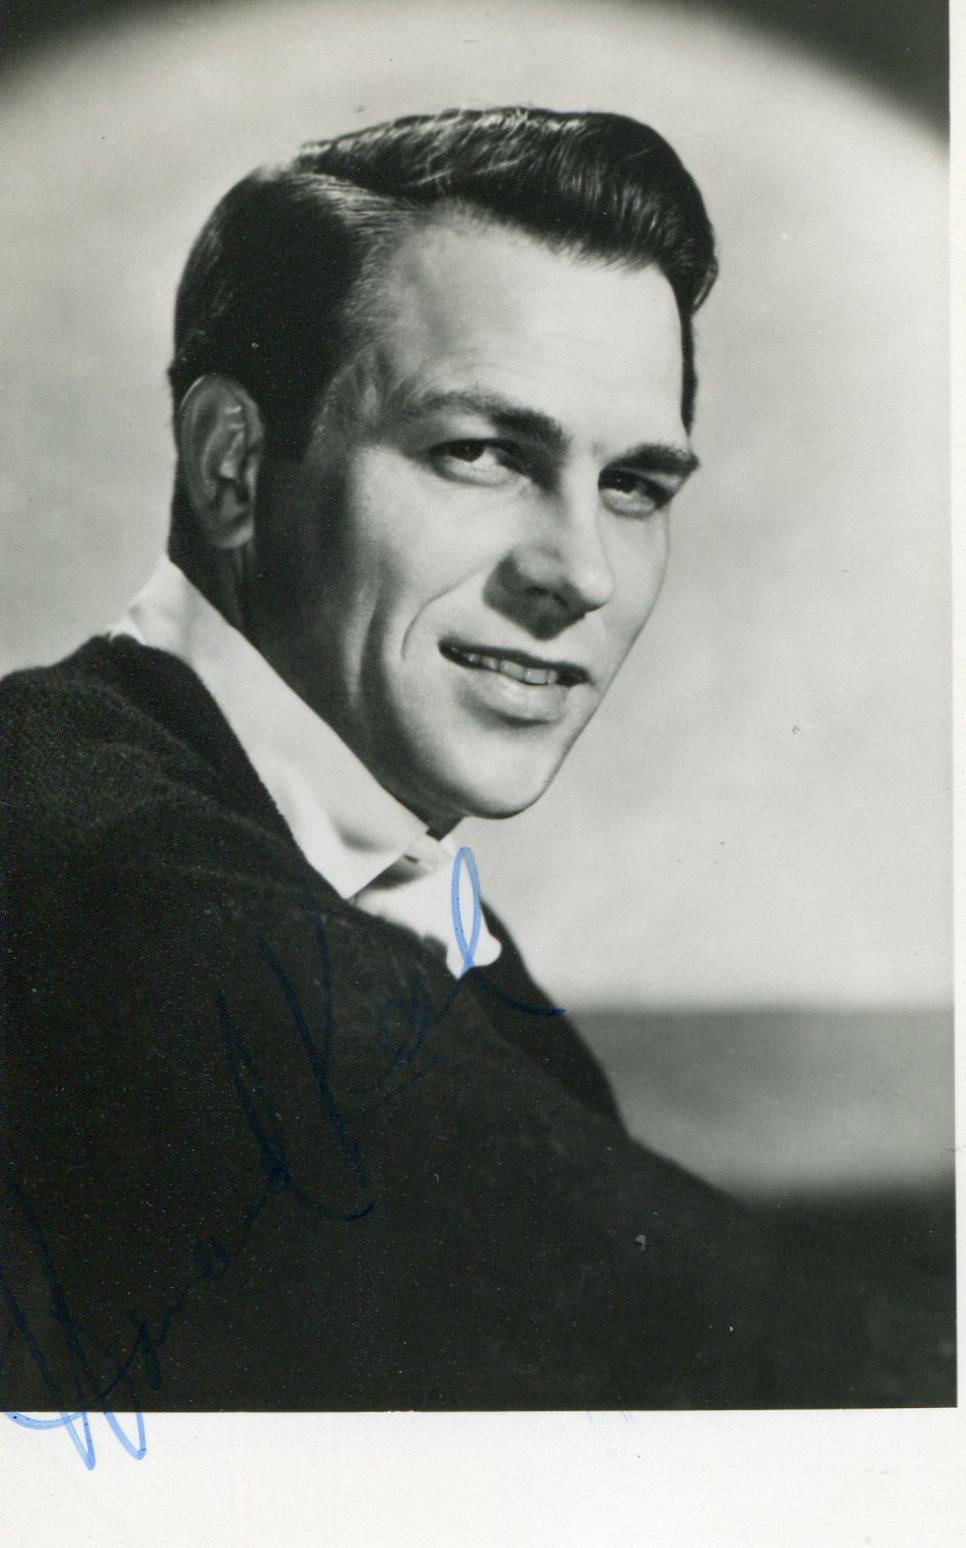 Howard Keel - Movies & Autographed Portraits Through The ...